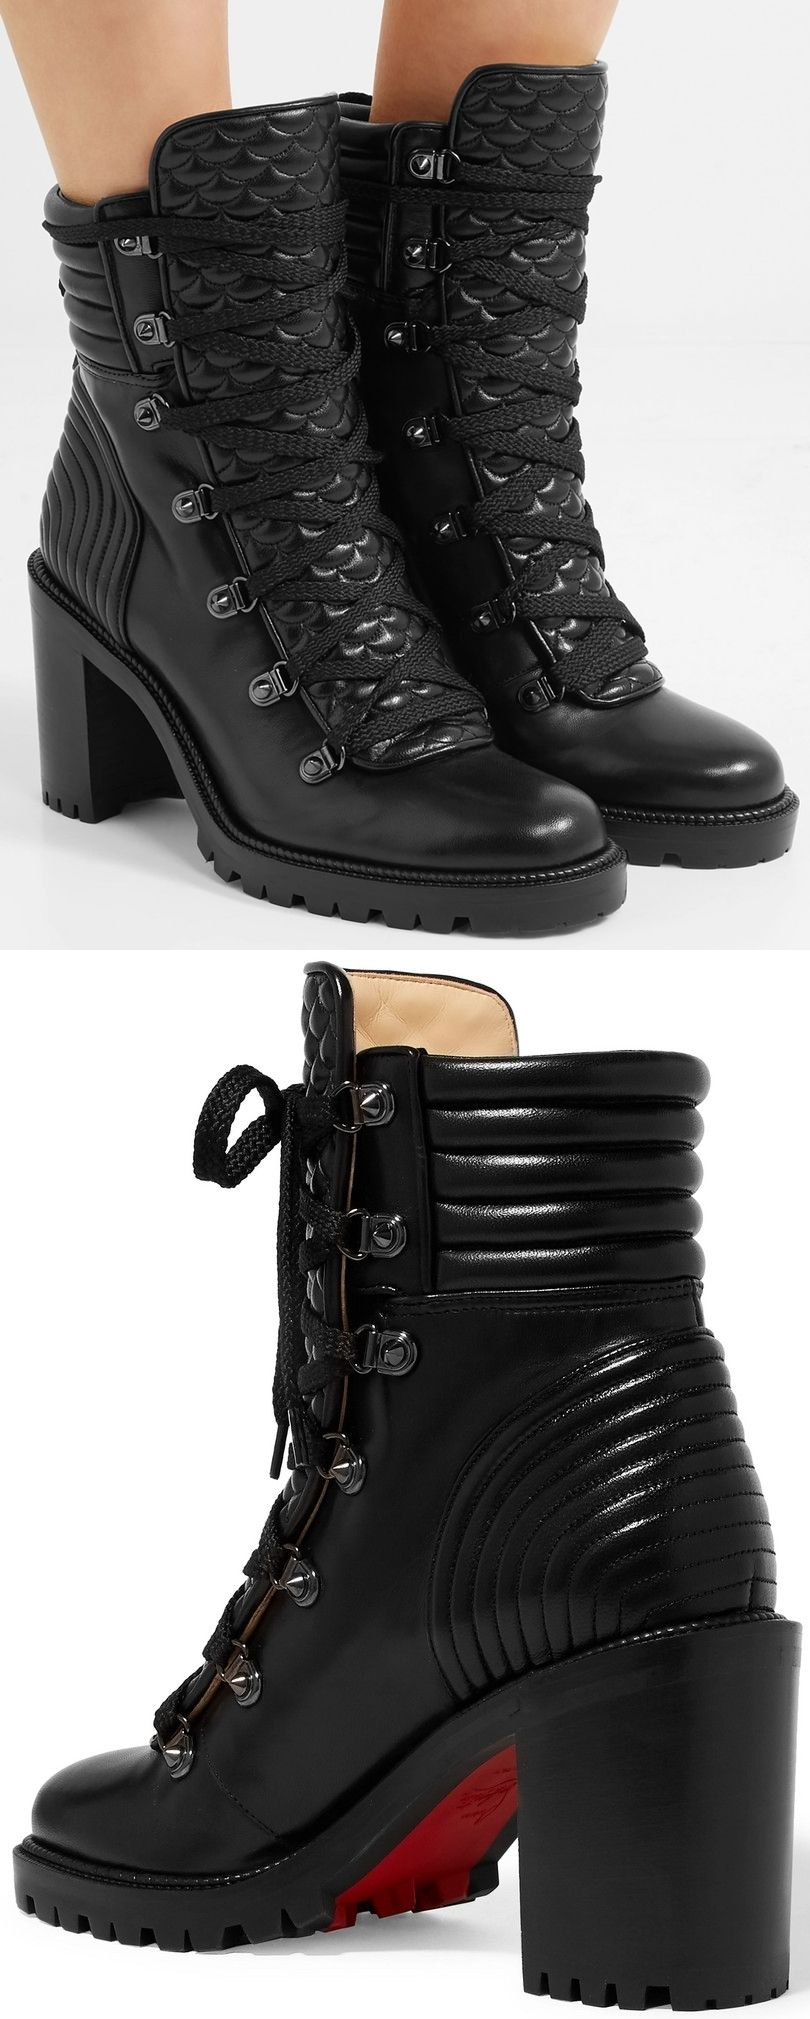 aac84e73414 Christian Louboutin s  Mad  ankle boots are modeled on hiking and moto  styles. Grounded with a chunky sole